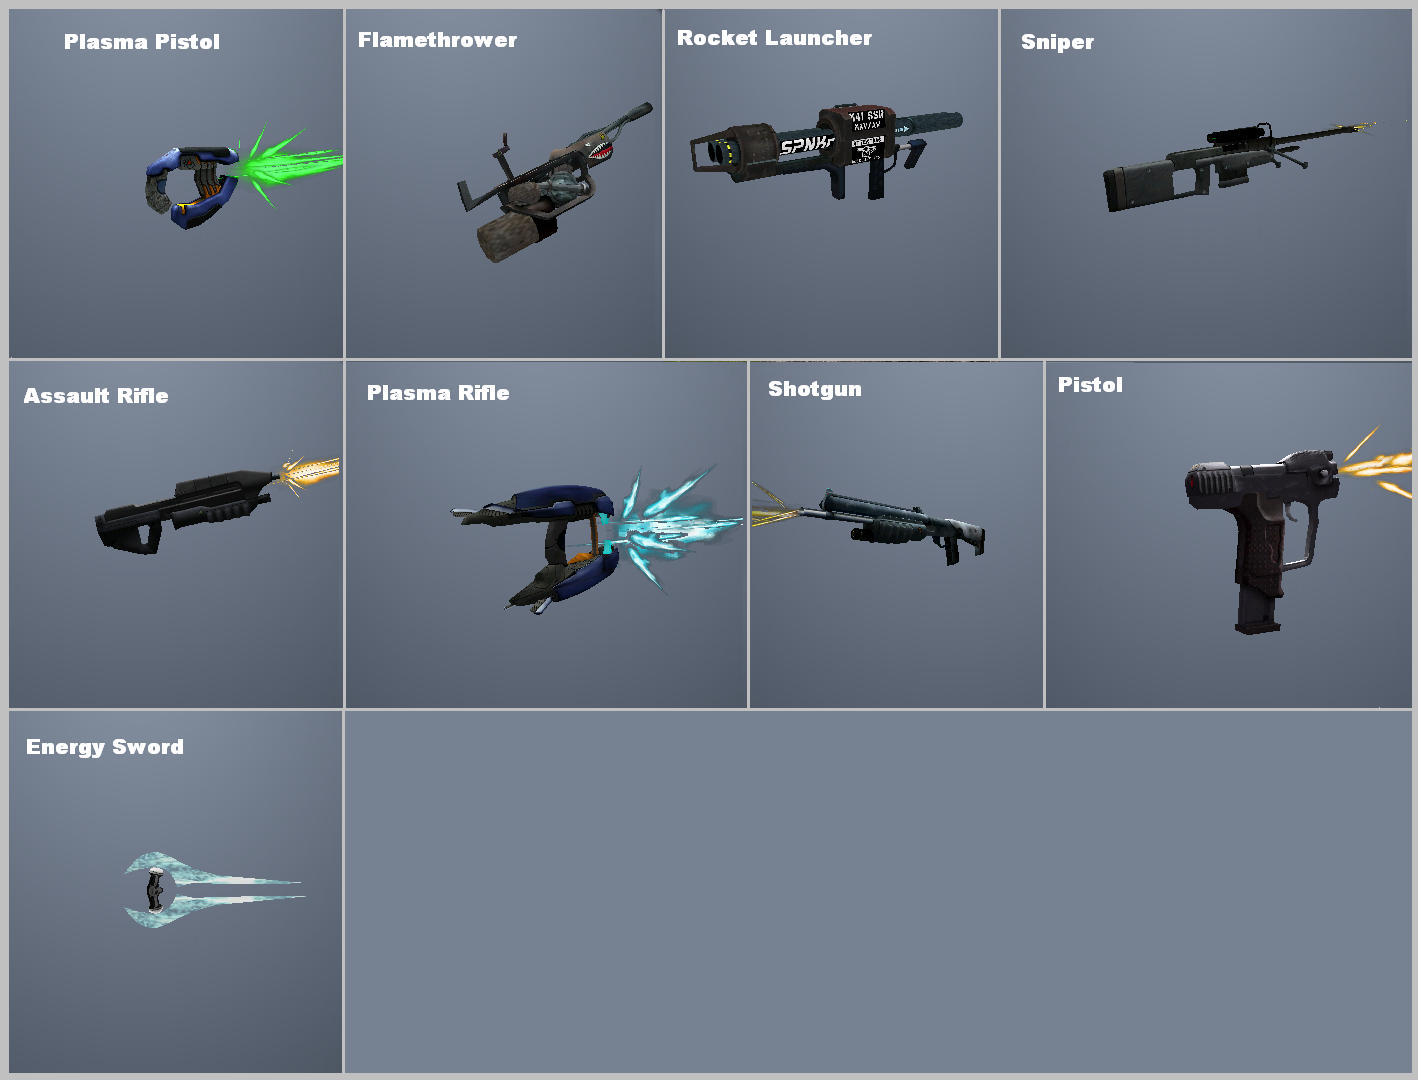 Gta halo weapons pack 1 may contain bugs download